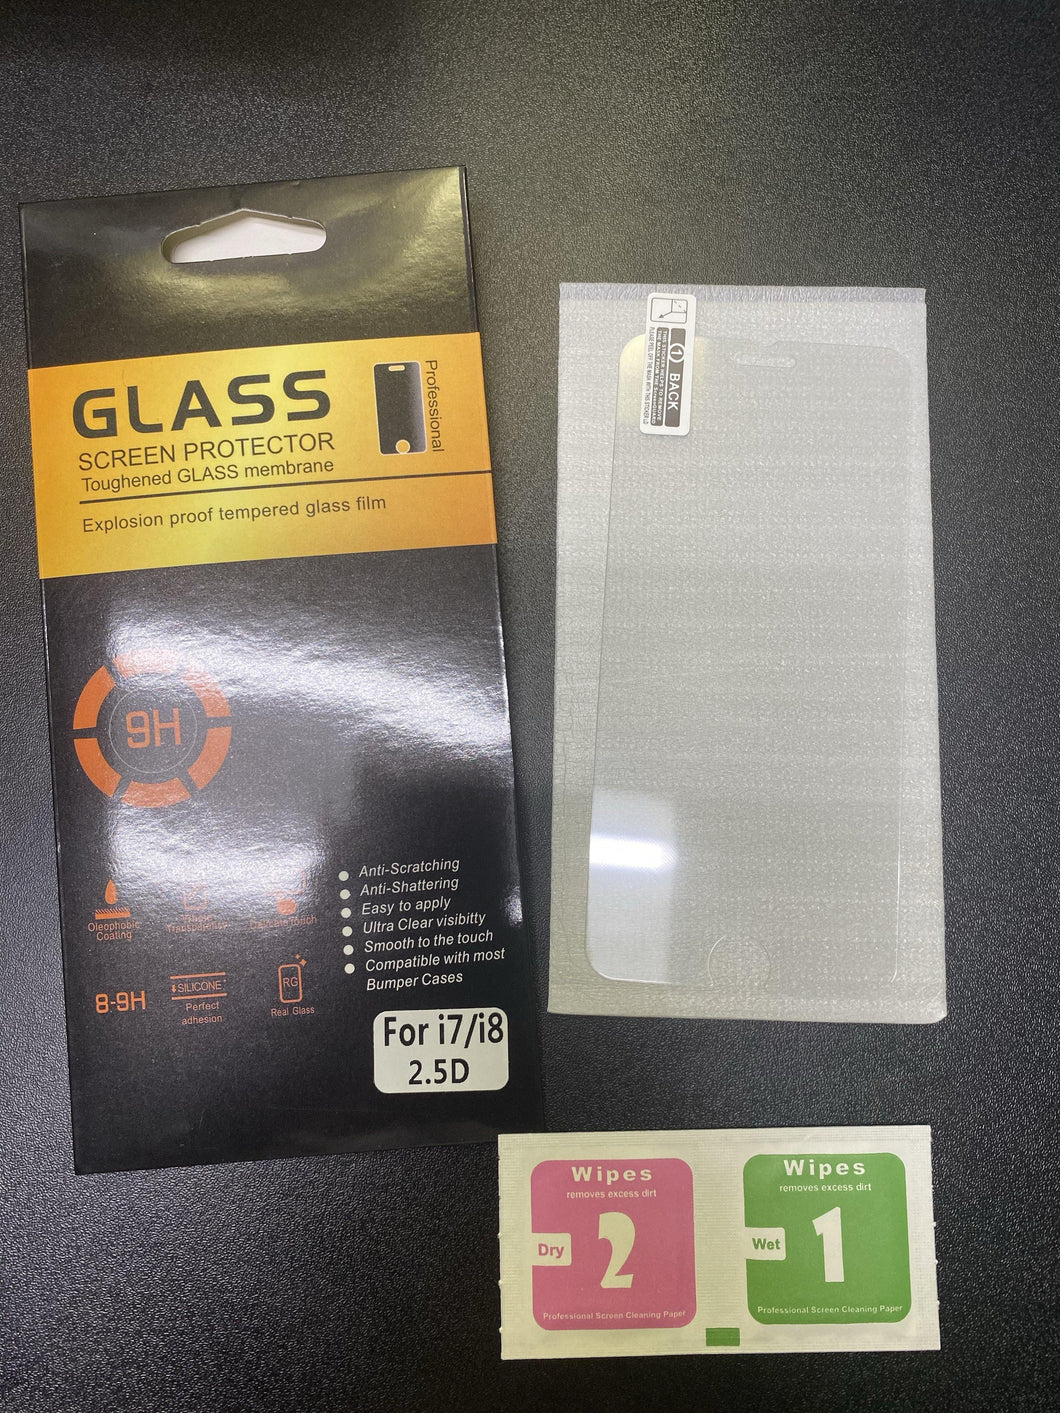 Screen Protectors for iPhone 6s thru 12 Pro Max